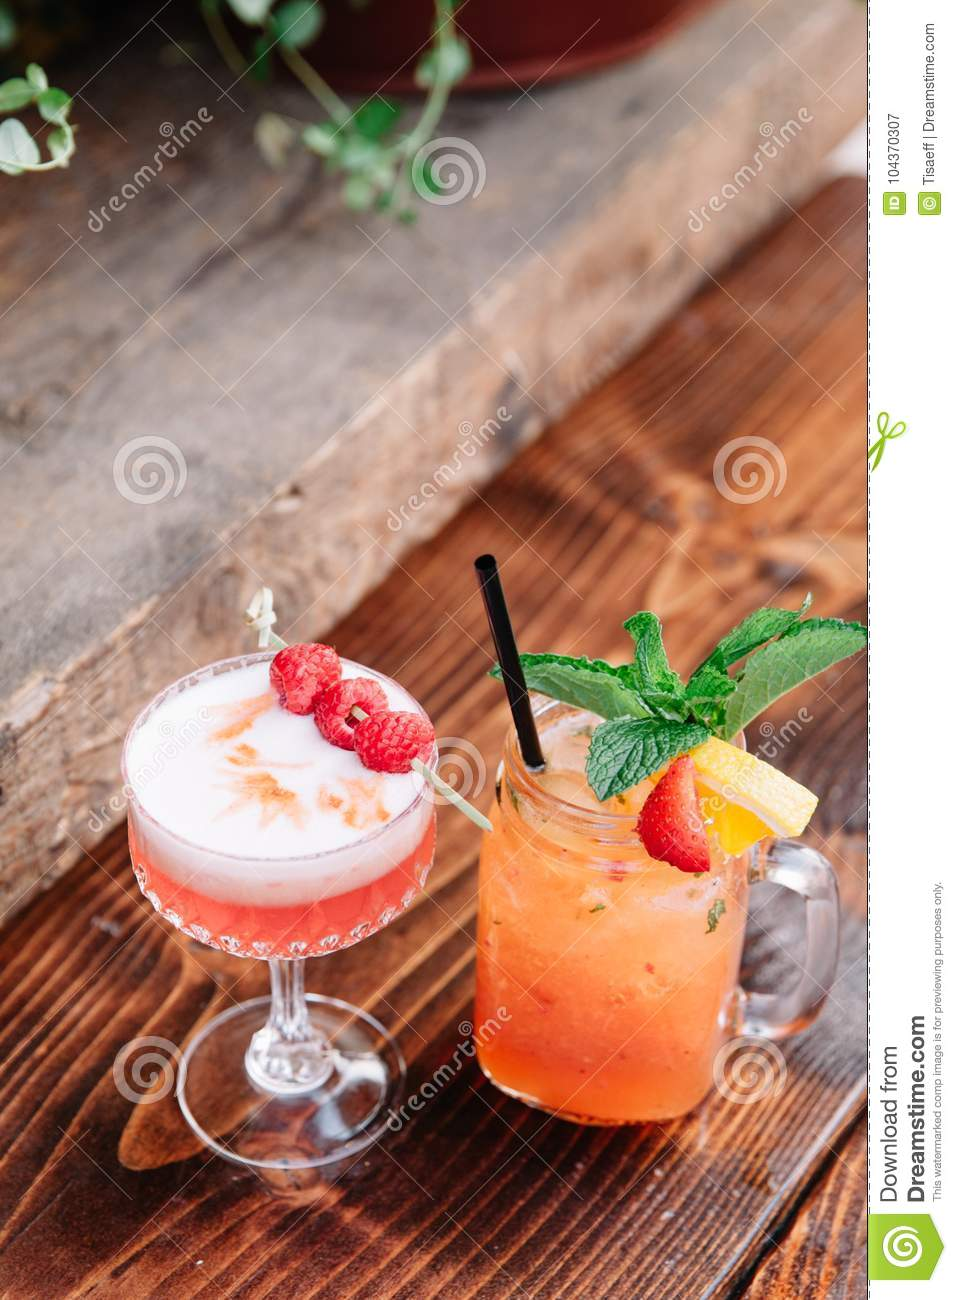 Two alcoholic cocktails garnished with berries and mint